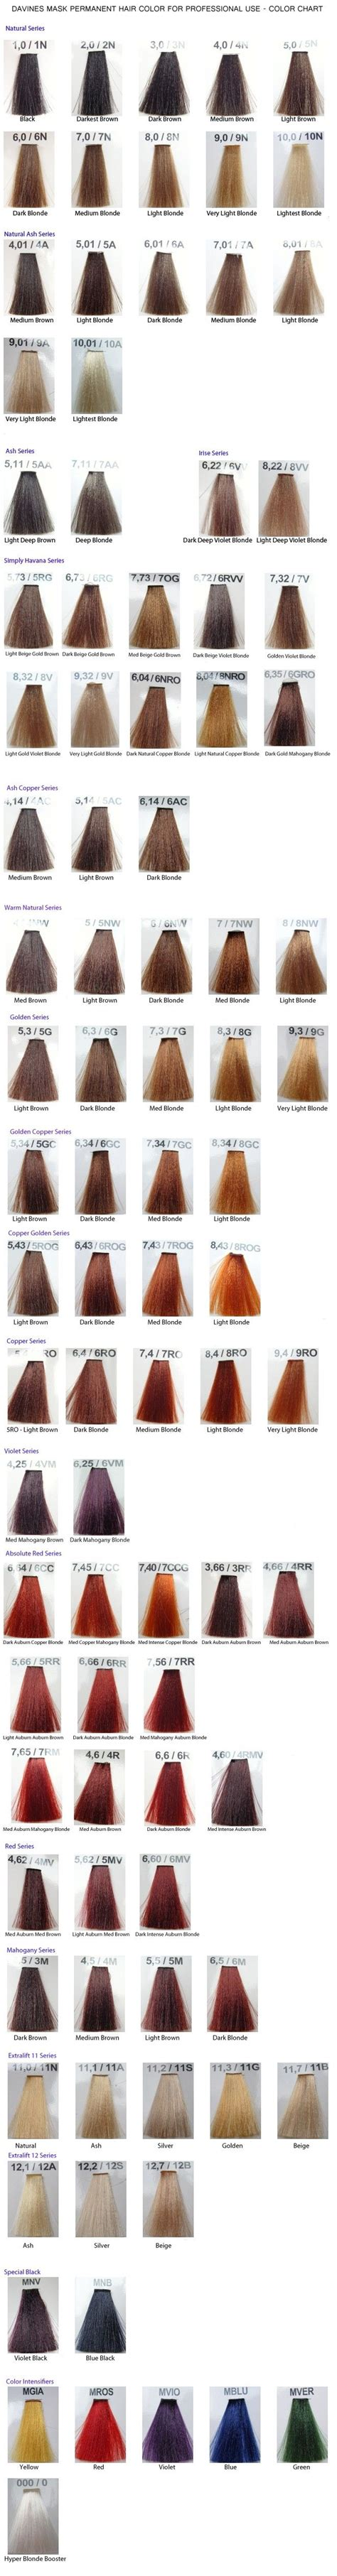 davines hair color davines mask color chart hair colors the